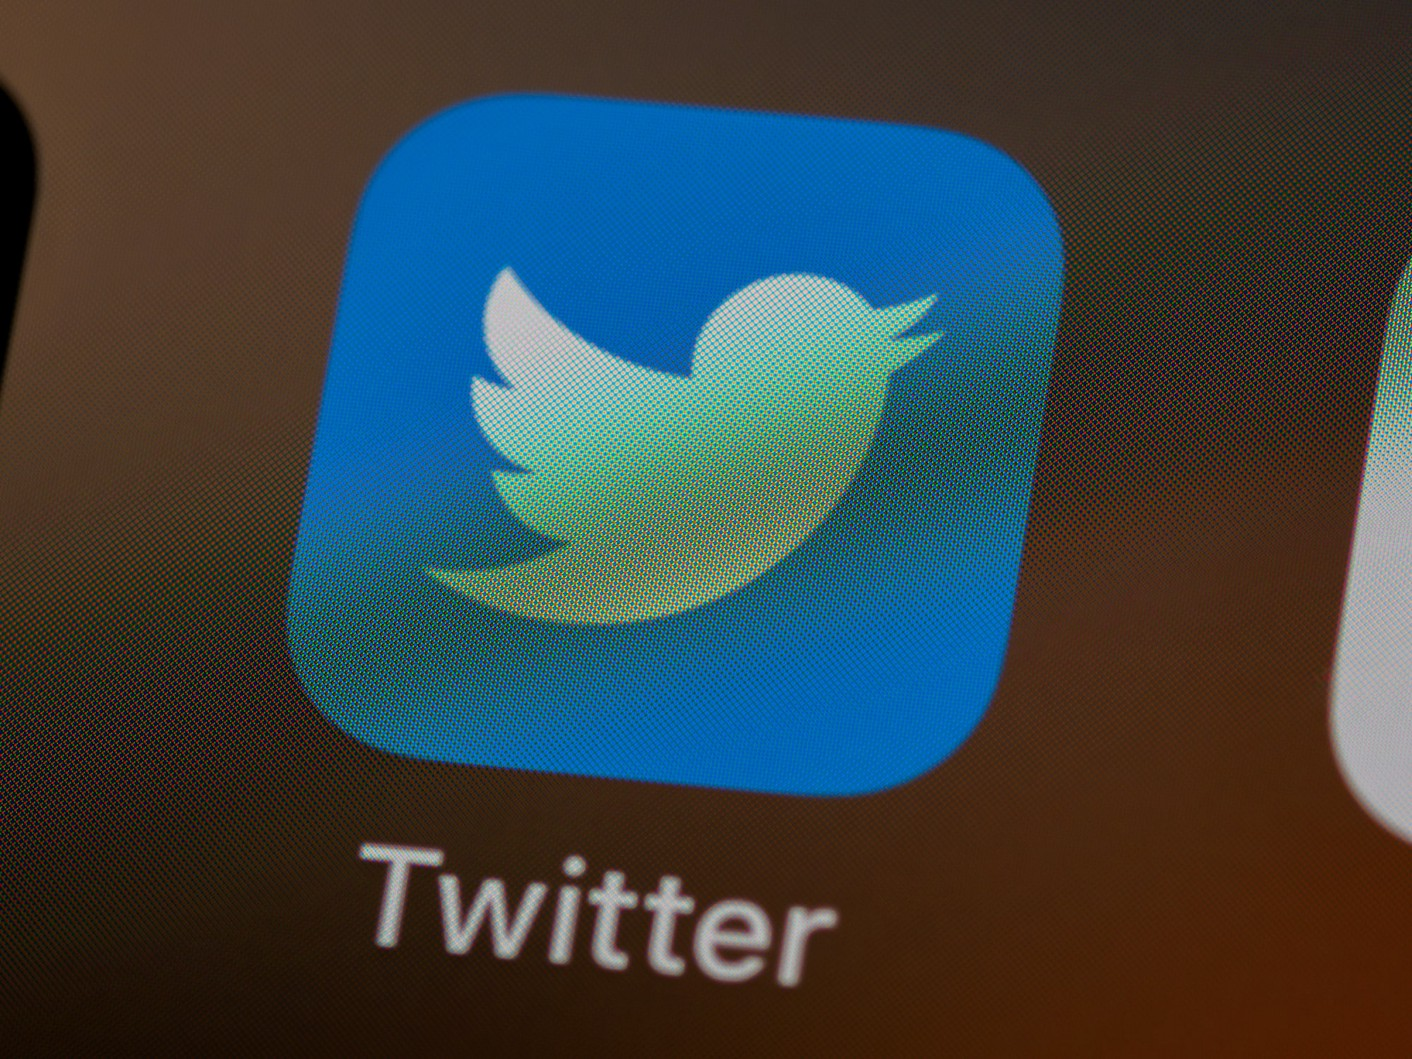 An image of the app 'Twitter' on a phone.